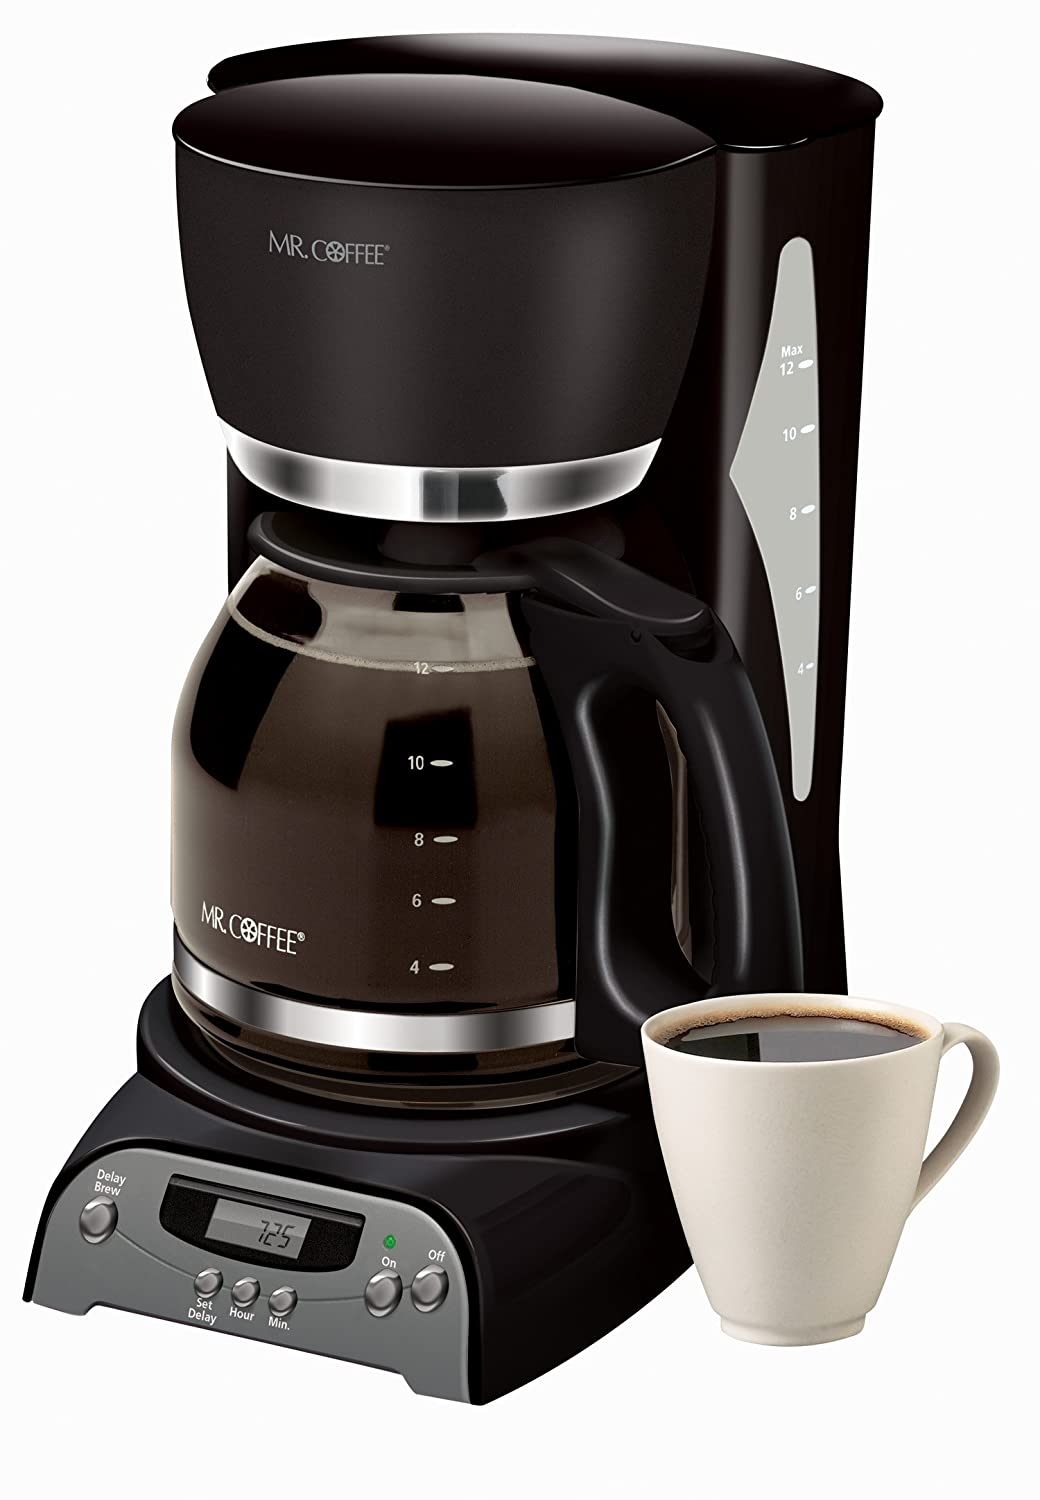 Amazon.com: Cafetera programable Sr. Cafe , Negro: Kitchen ...